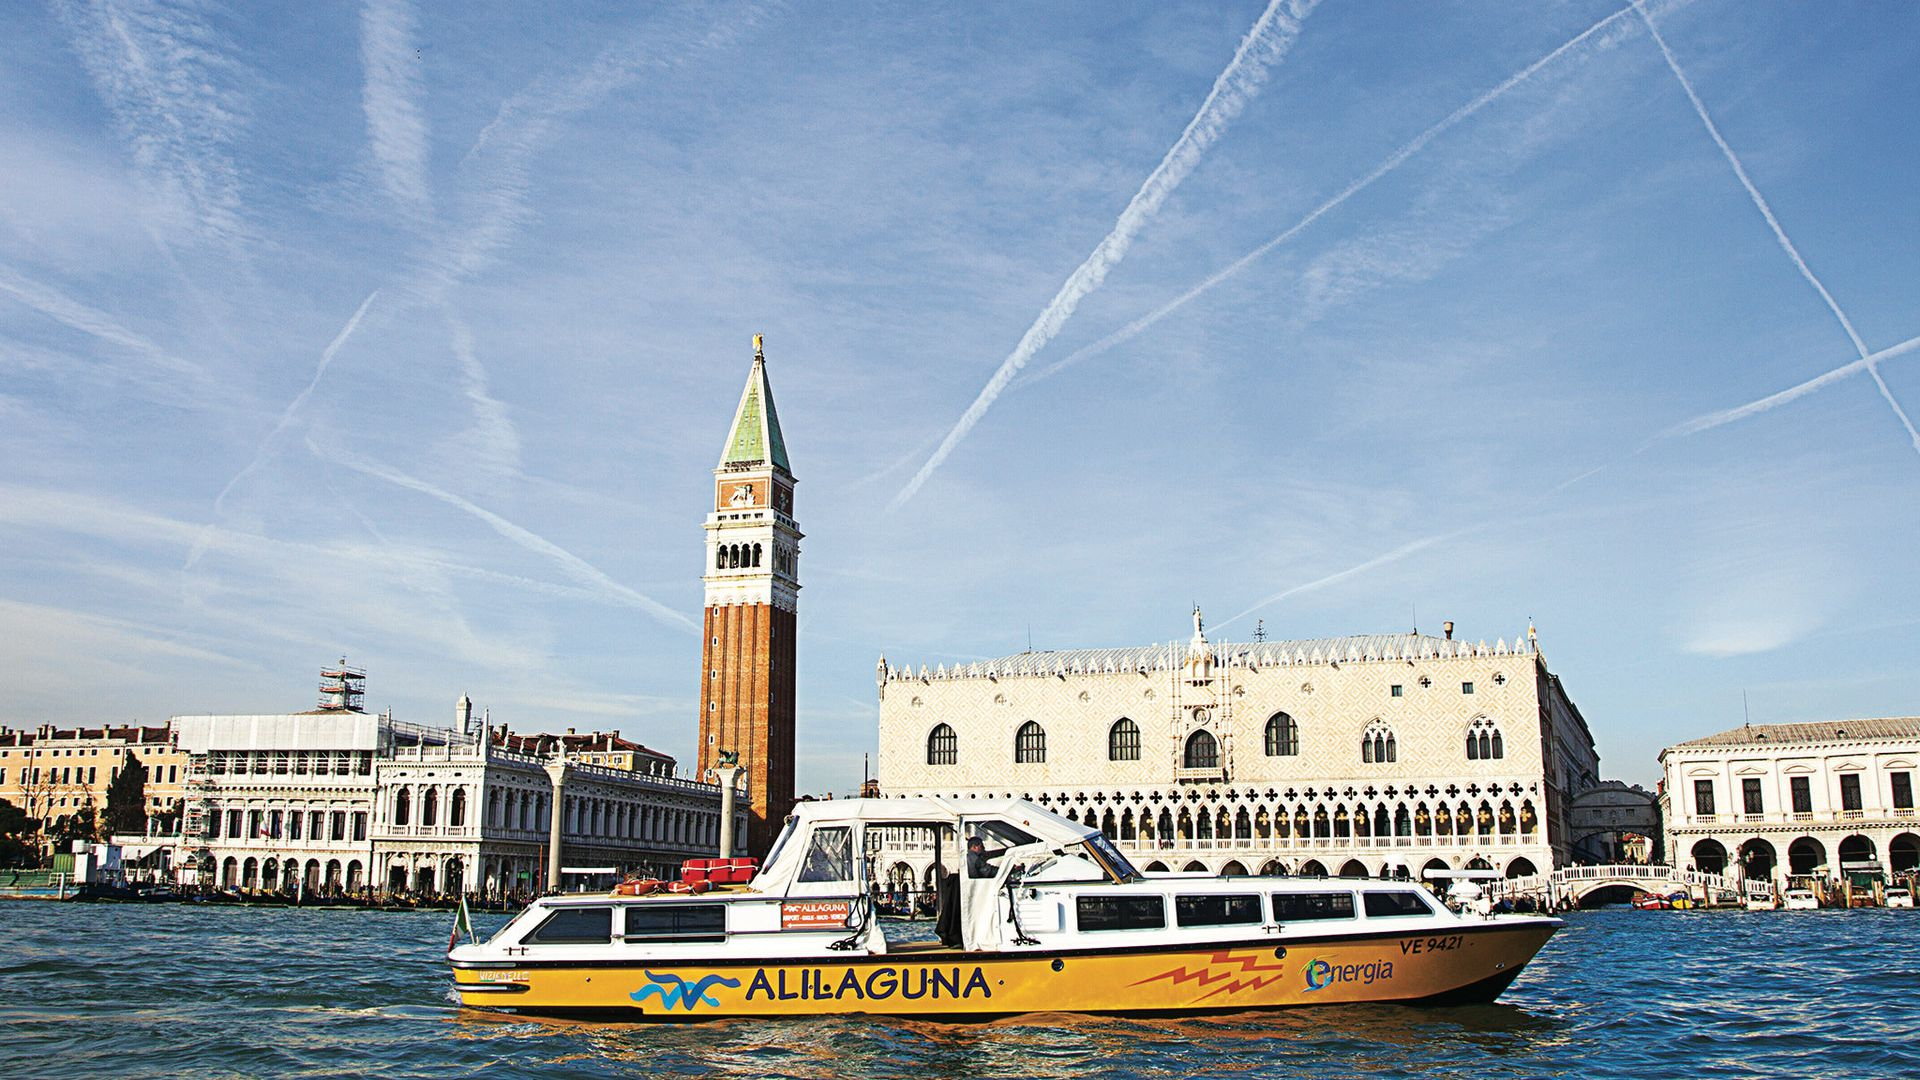 Alilaguna Boat Transfer between Venice Marco Polo Airport and Venice